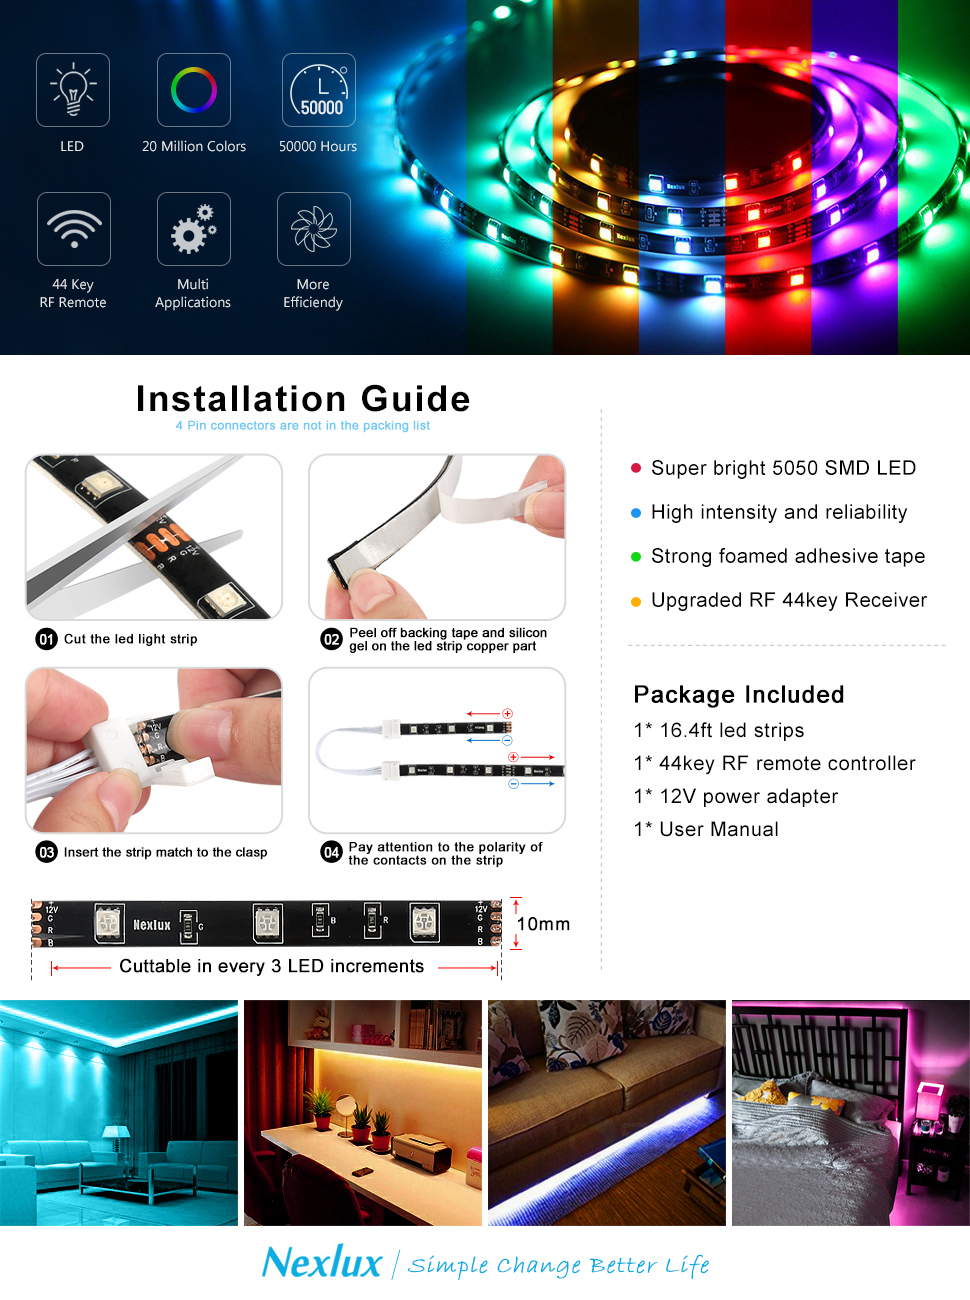 Color lines online strip game - Nexlux 16 4 Ft 5m Waterproof 5050 Smd Rgb Led Flexible Strip Light